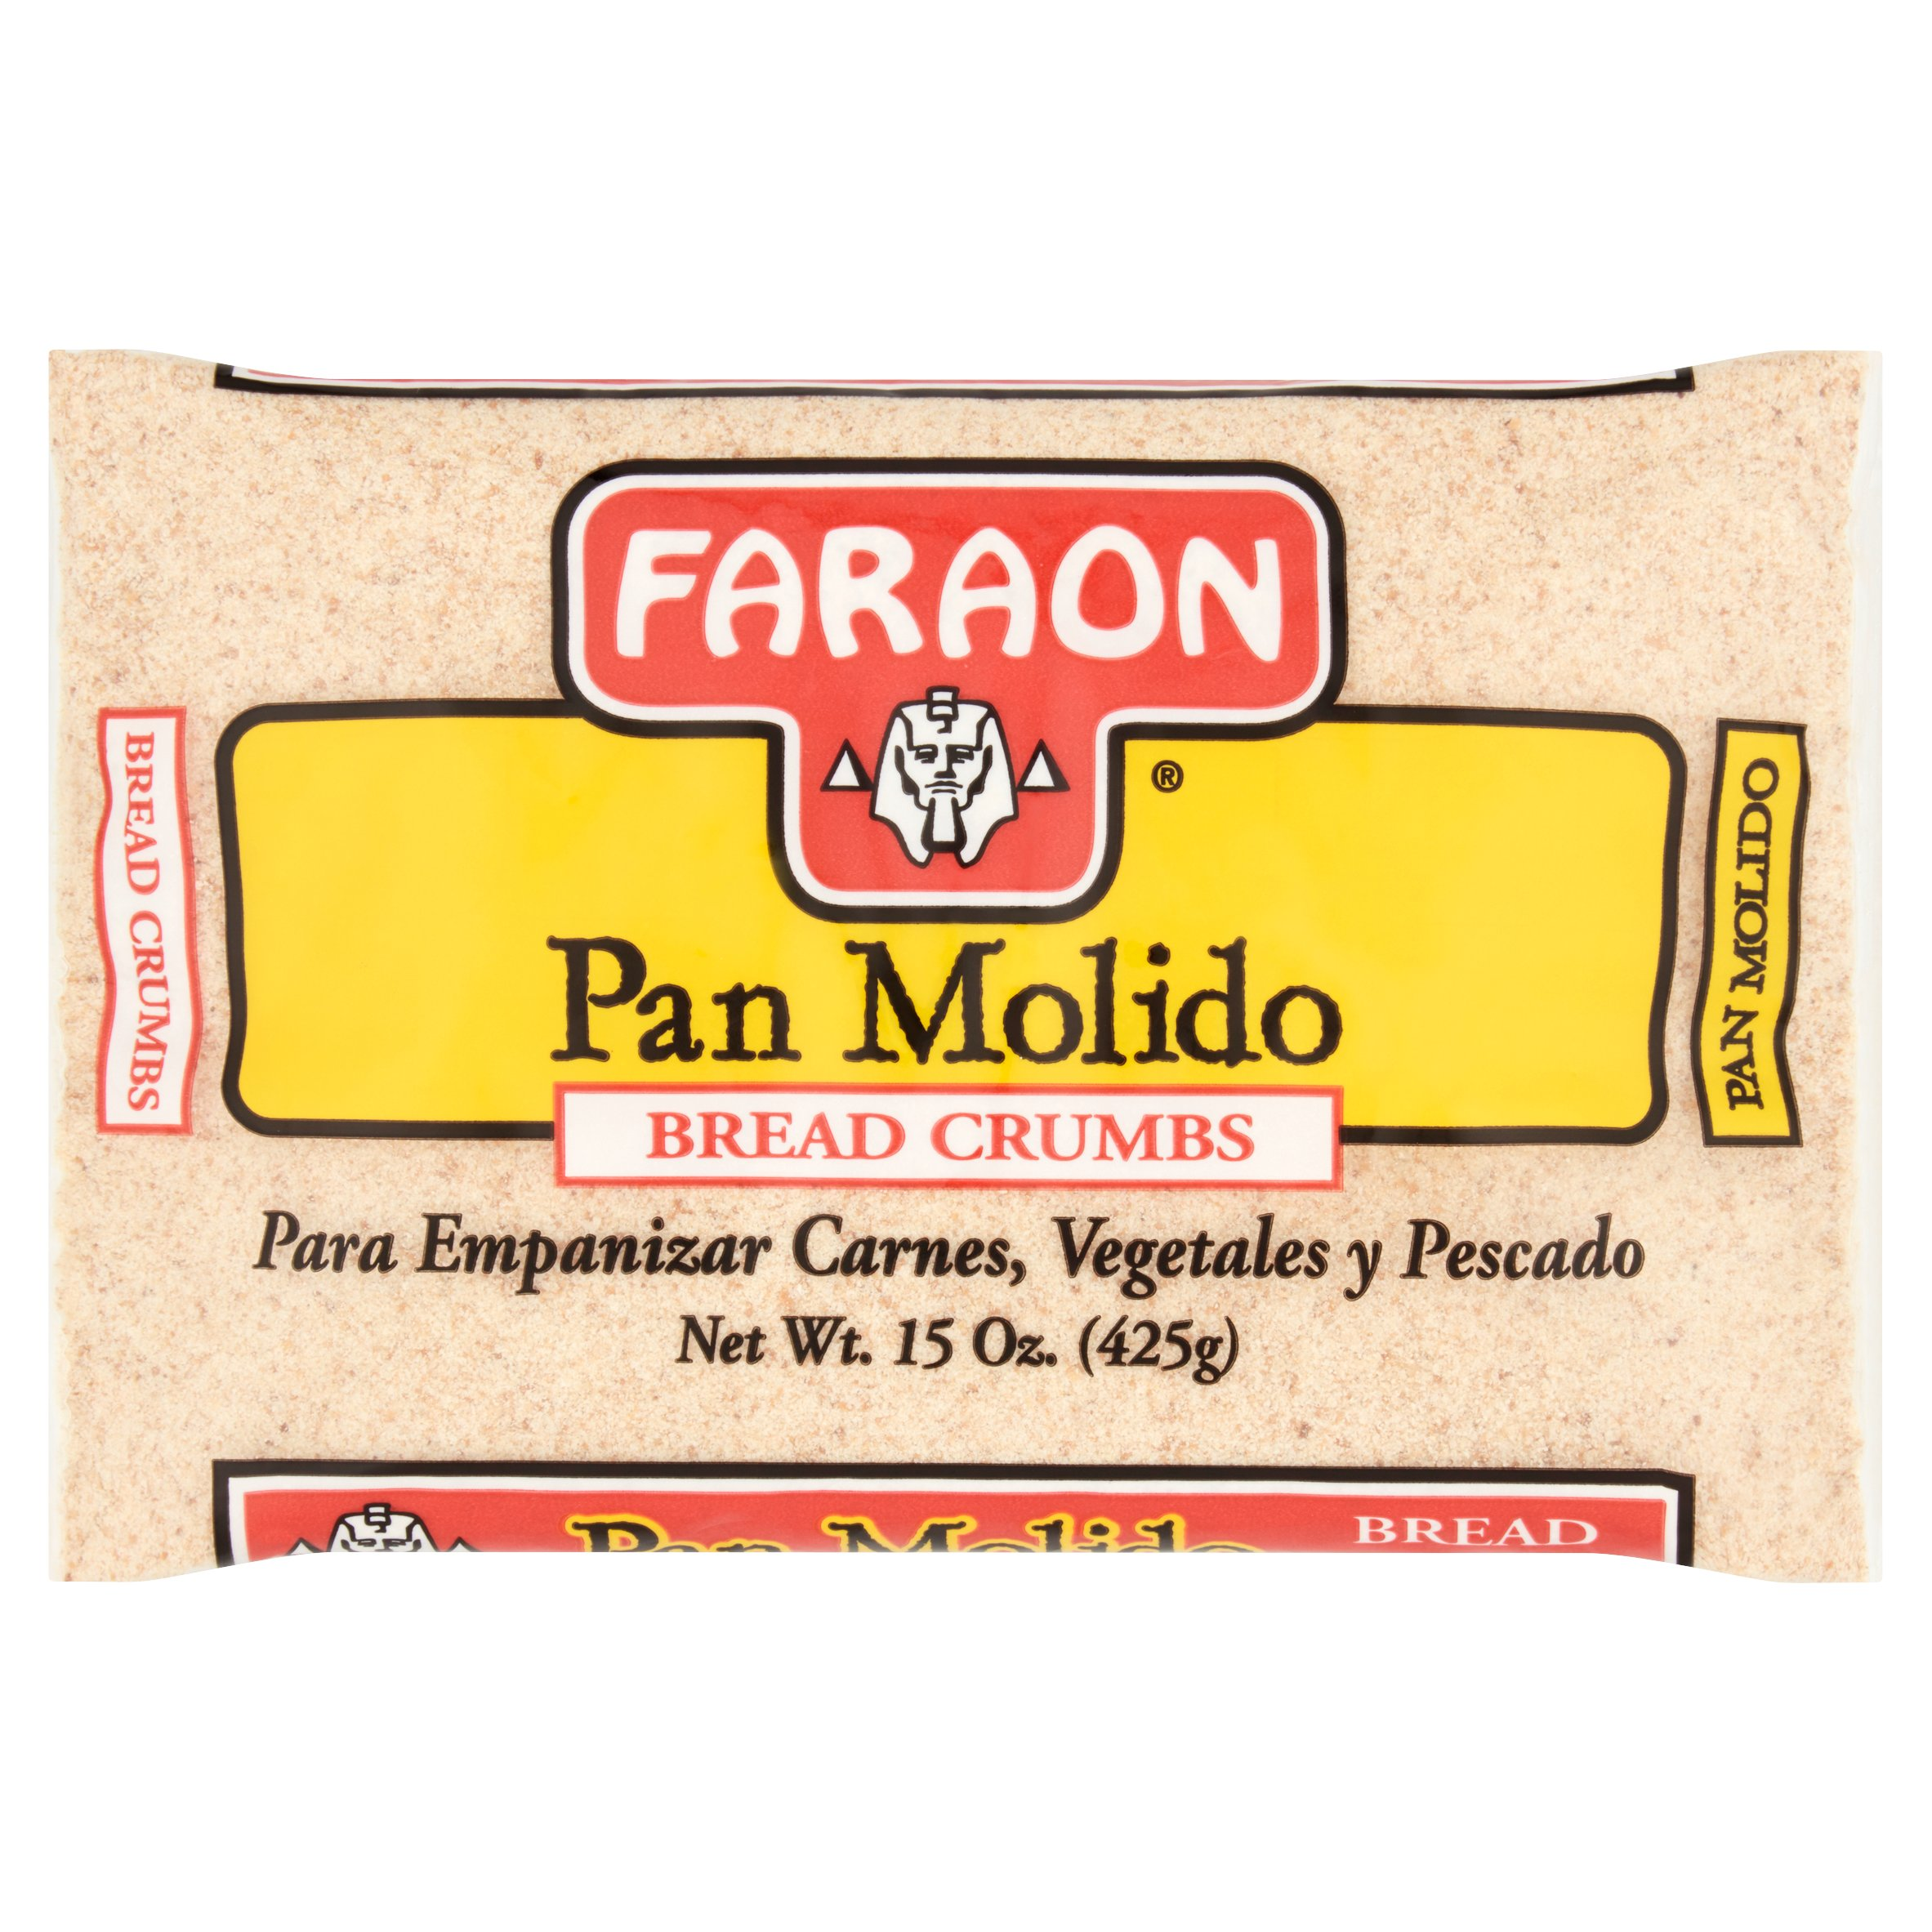 Faraon Bread Crumbs, 15 oz